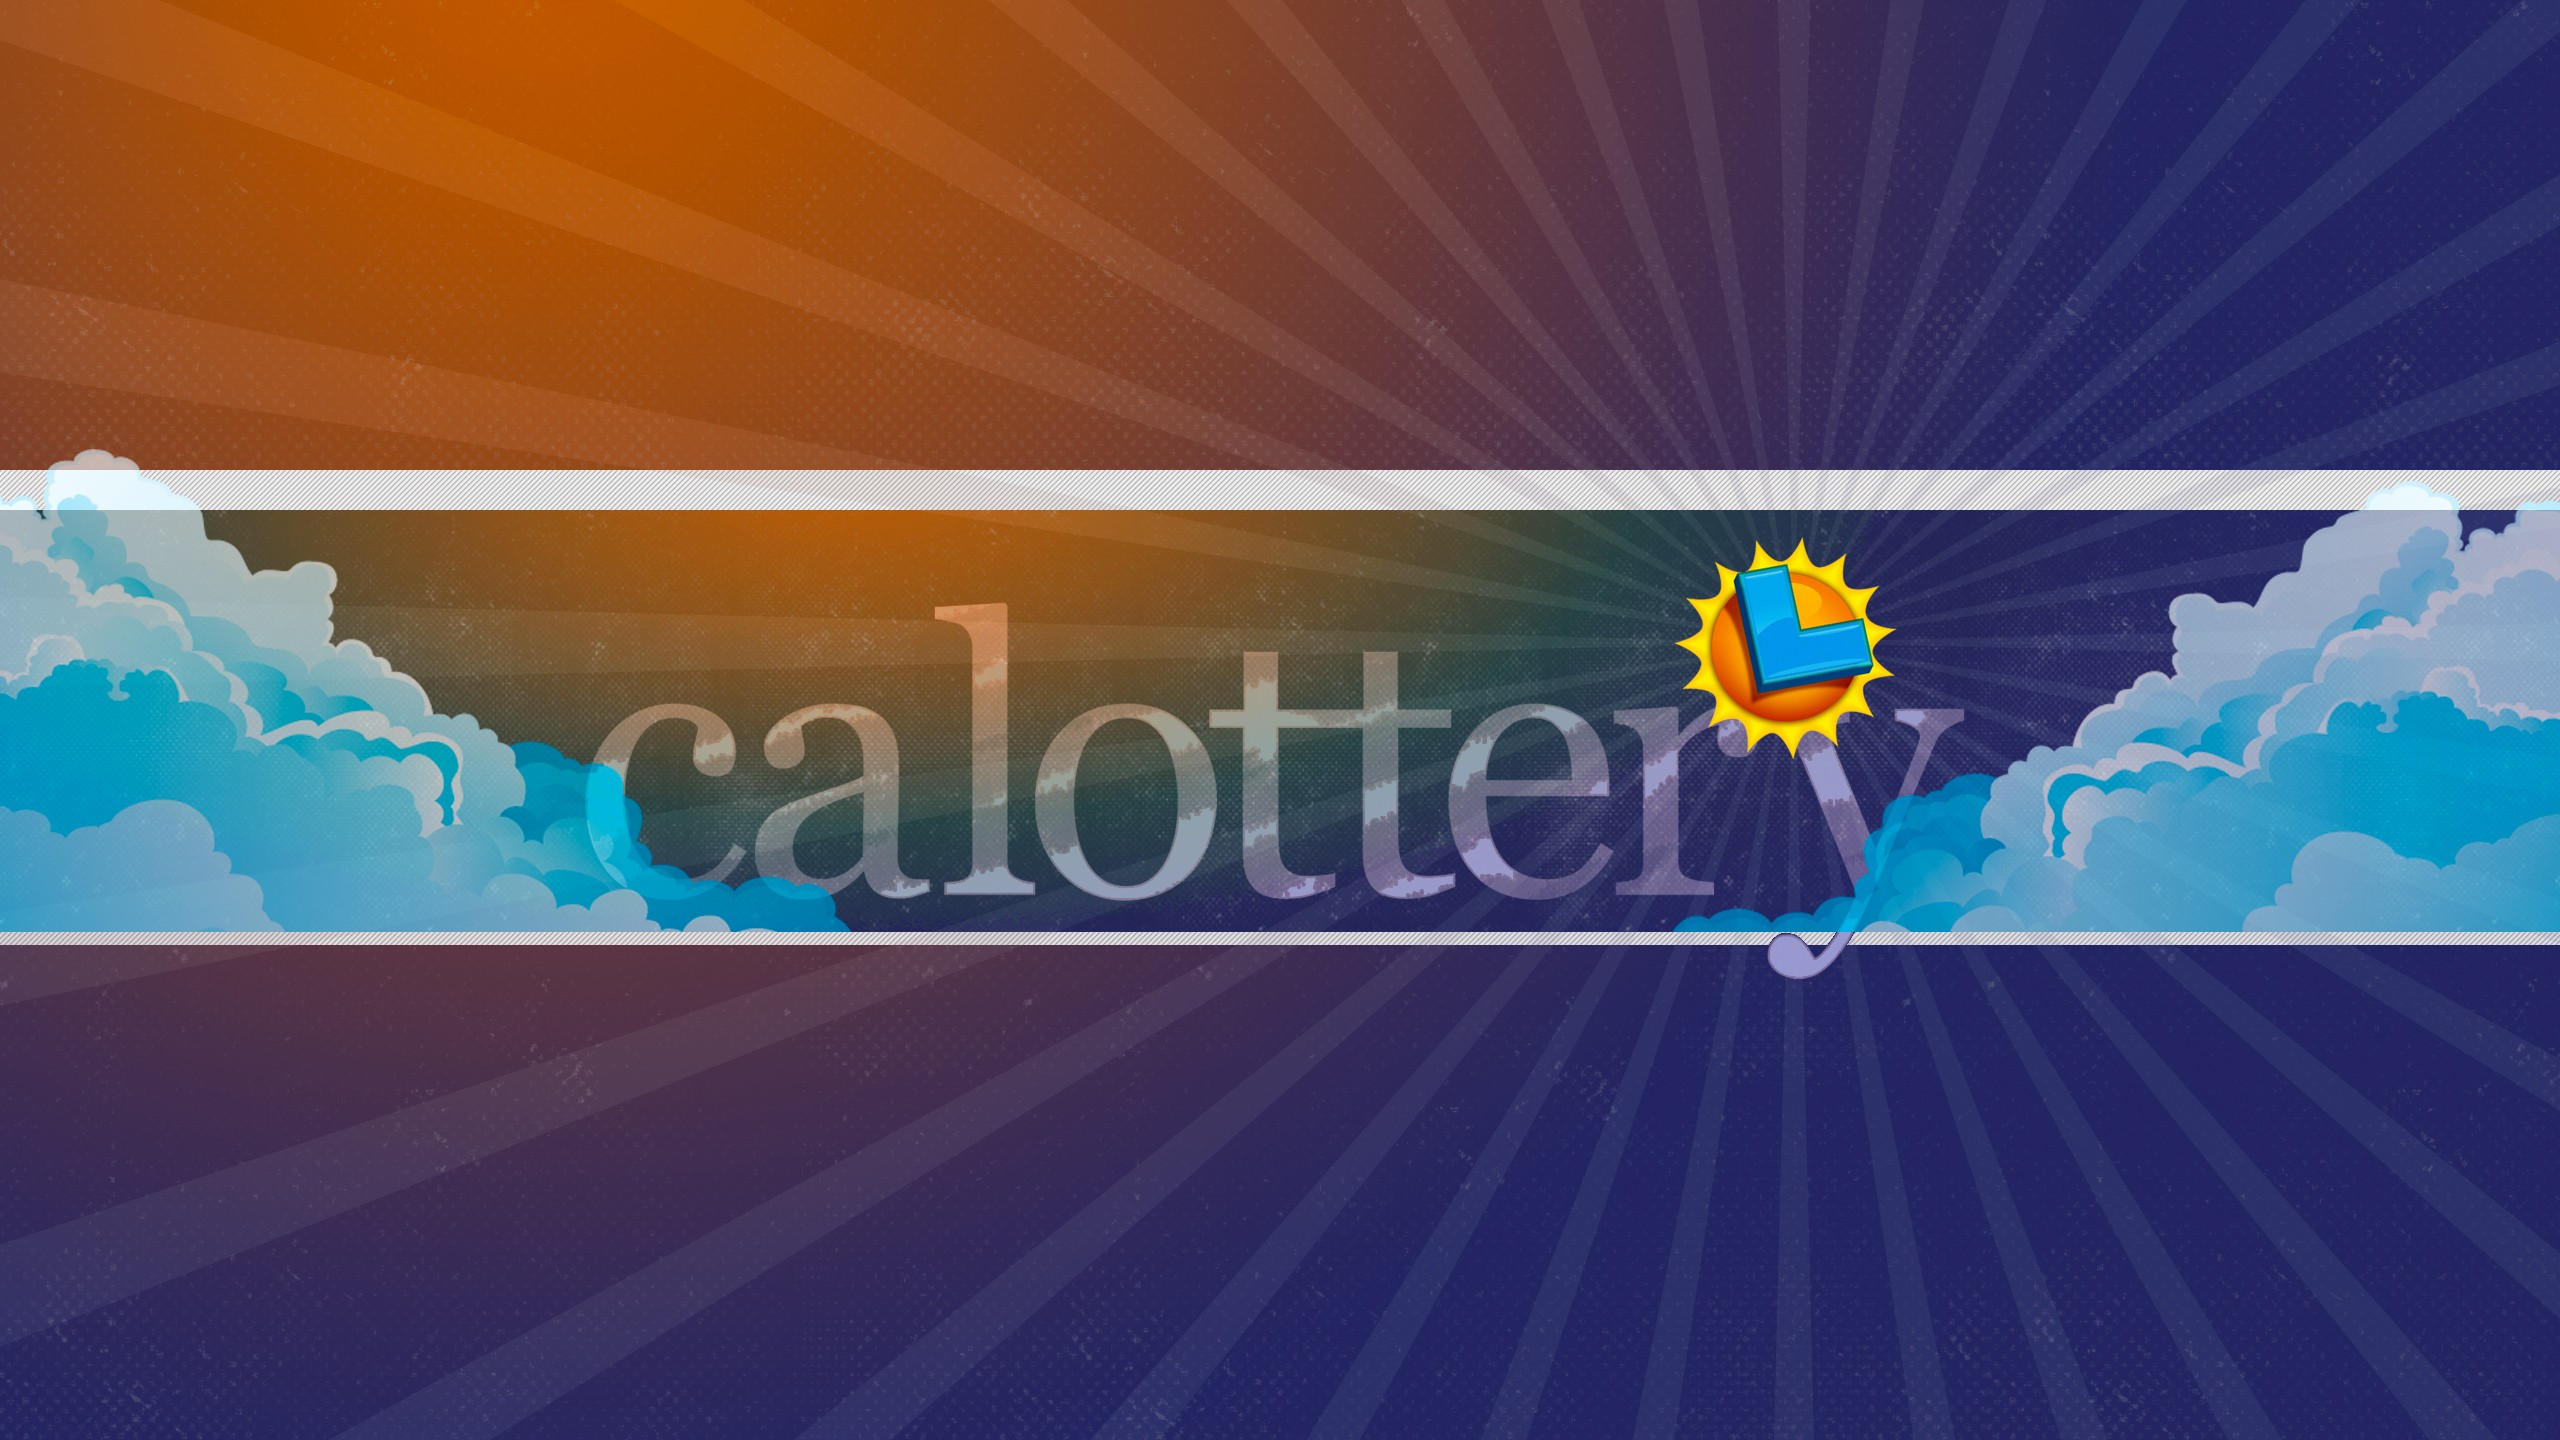 California State Lottery | LinkedIn